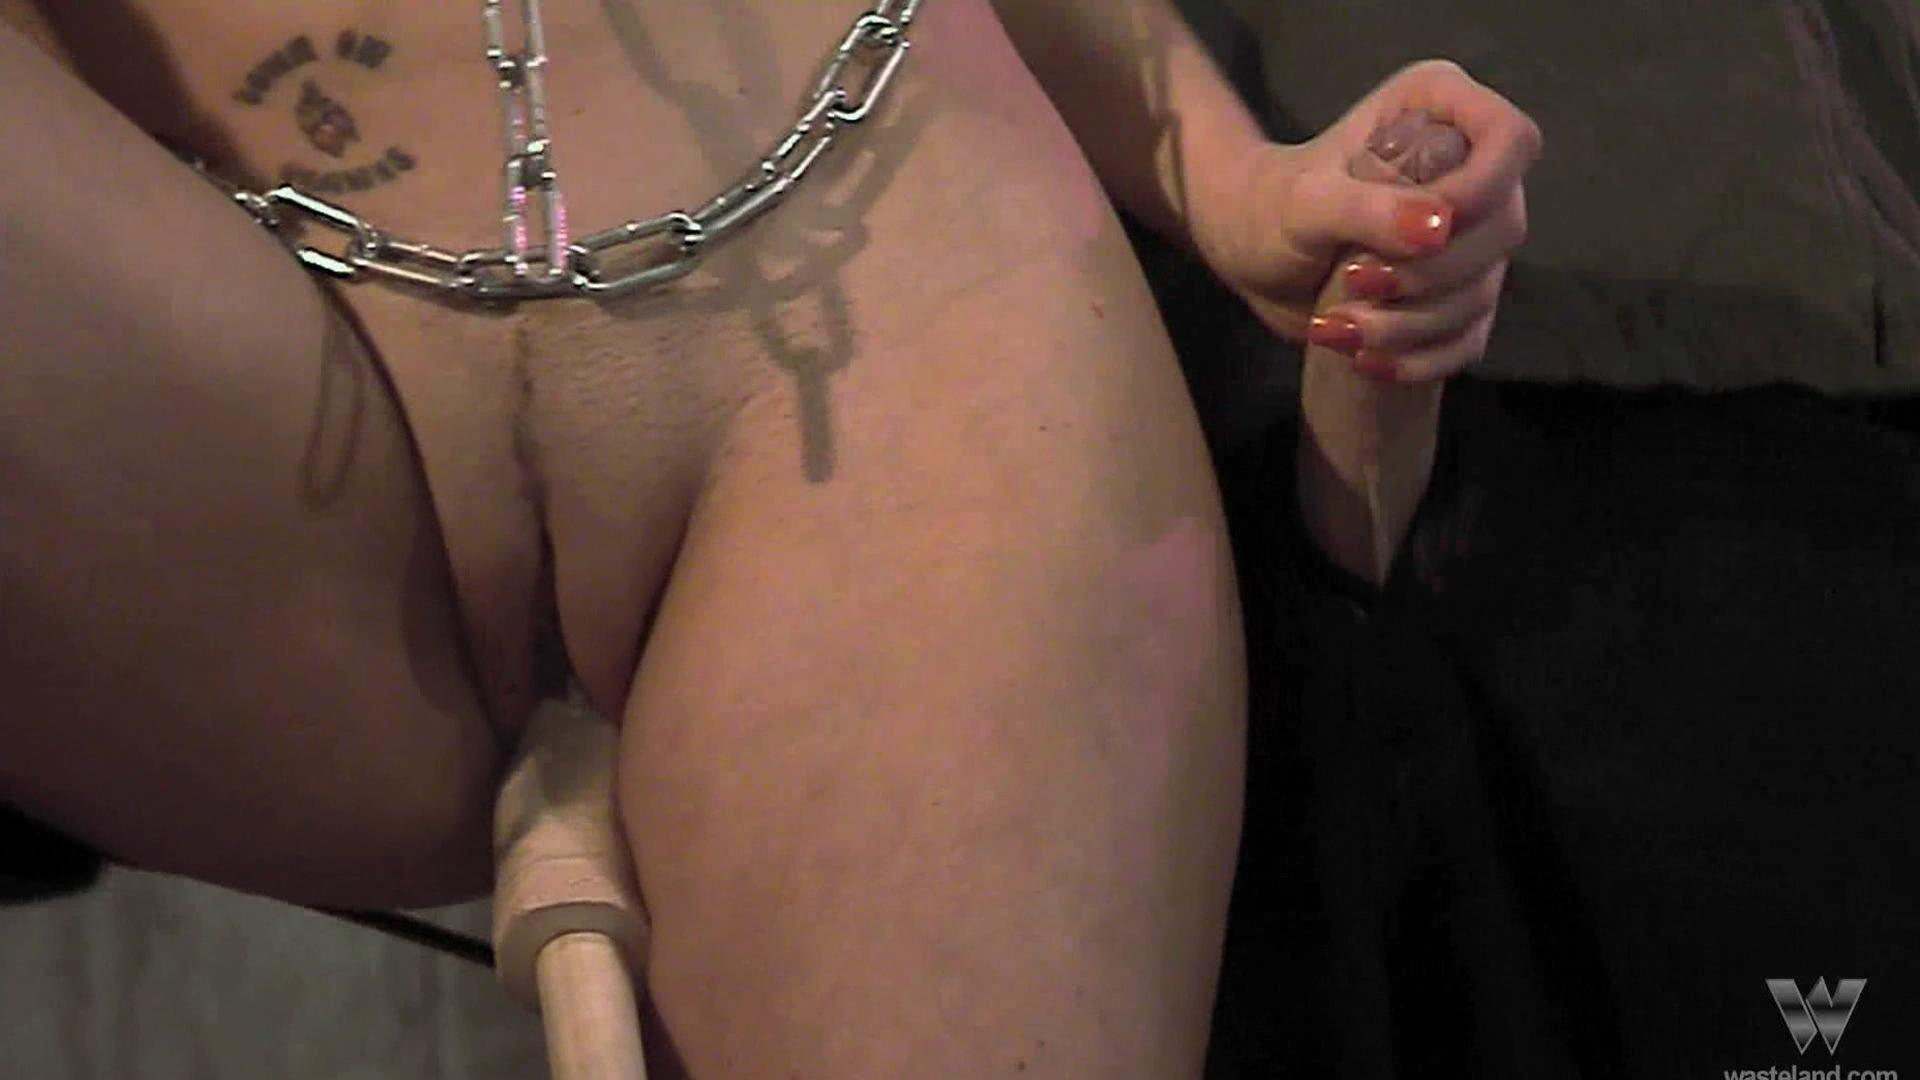 Sex Slave Daisy Duxe 2 / Daisy Duxe is chained up and brought to the brink of orgasm, only to be denied! This BDSM clip is from Wasteland, the finest in fetish!